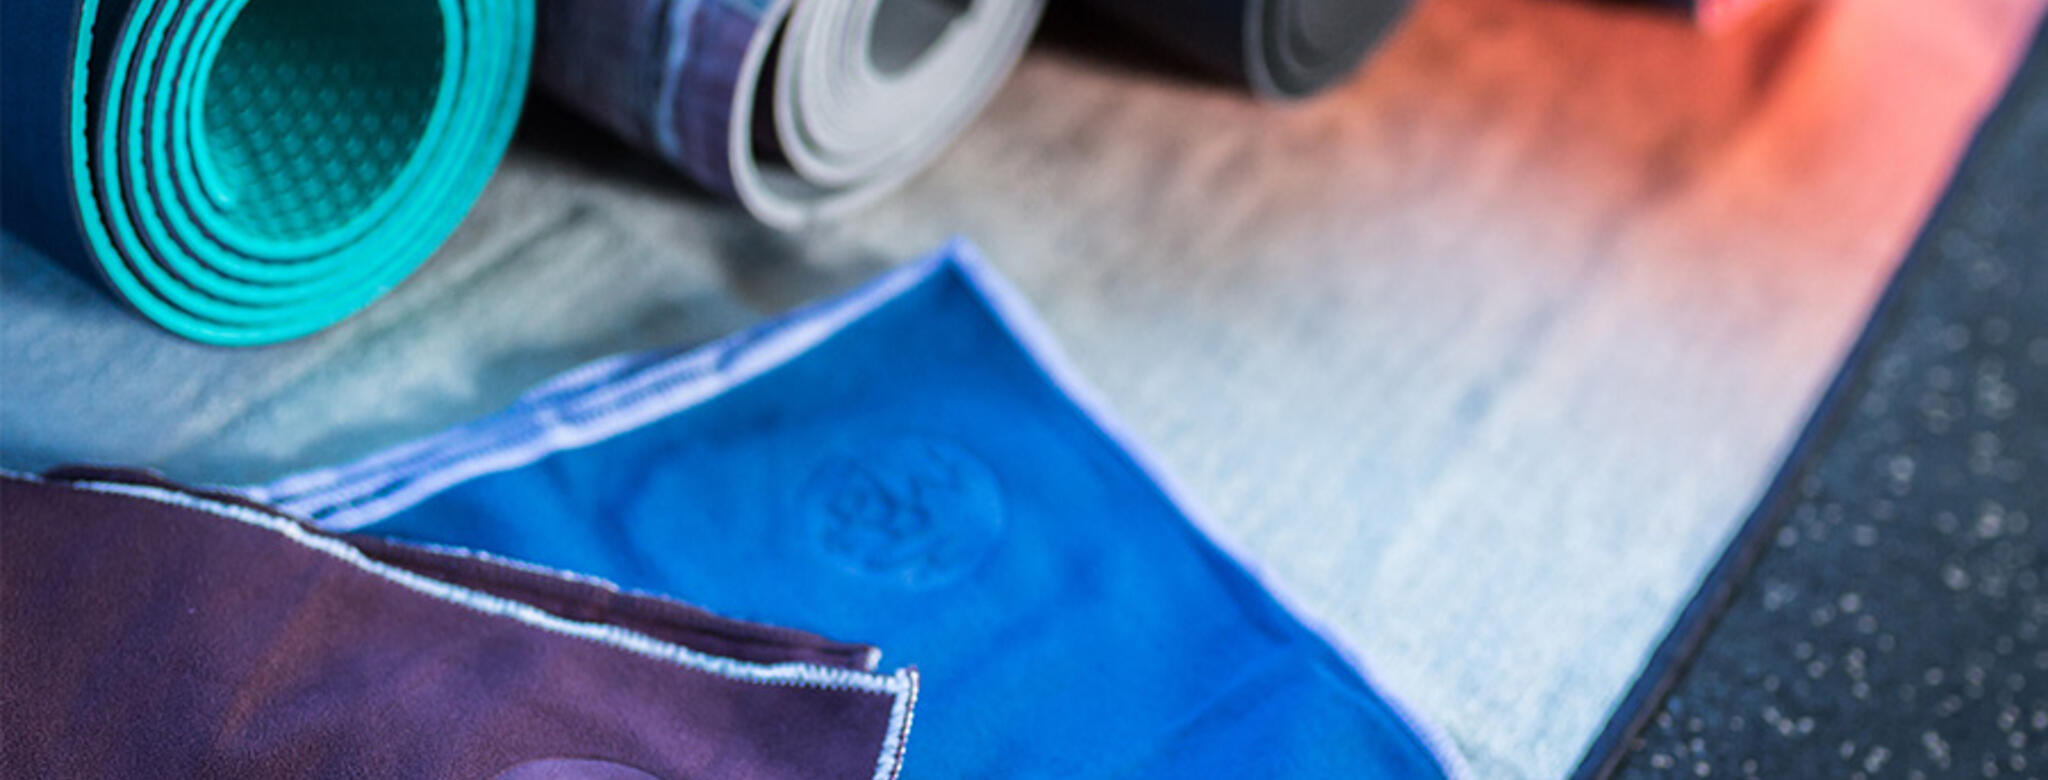 Manduka Products For Small Business Saturday